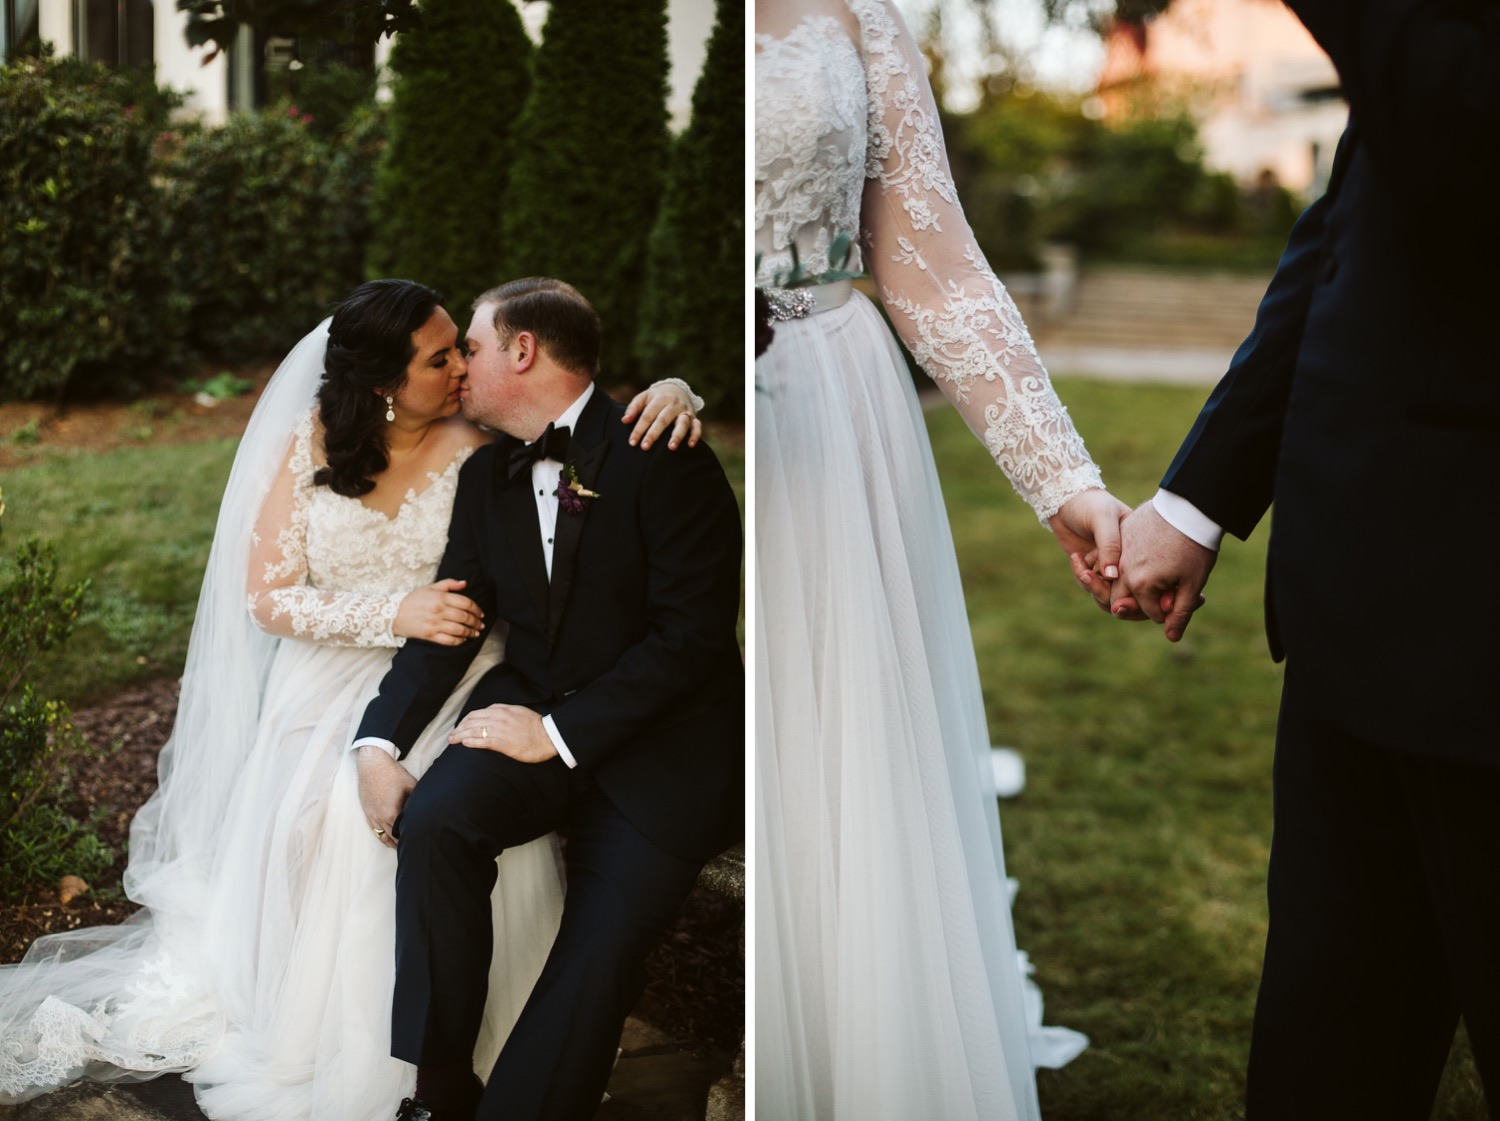 lacy sleeved wedding dress